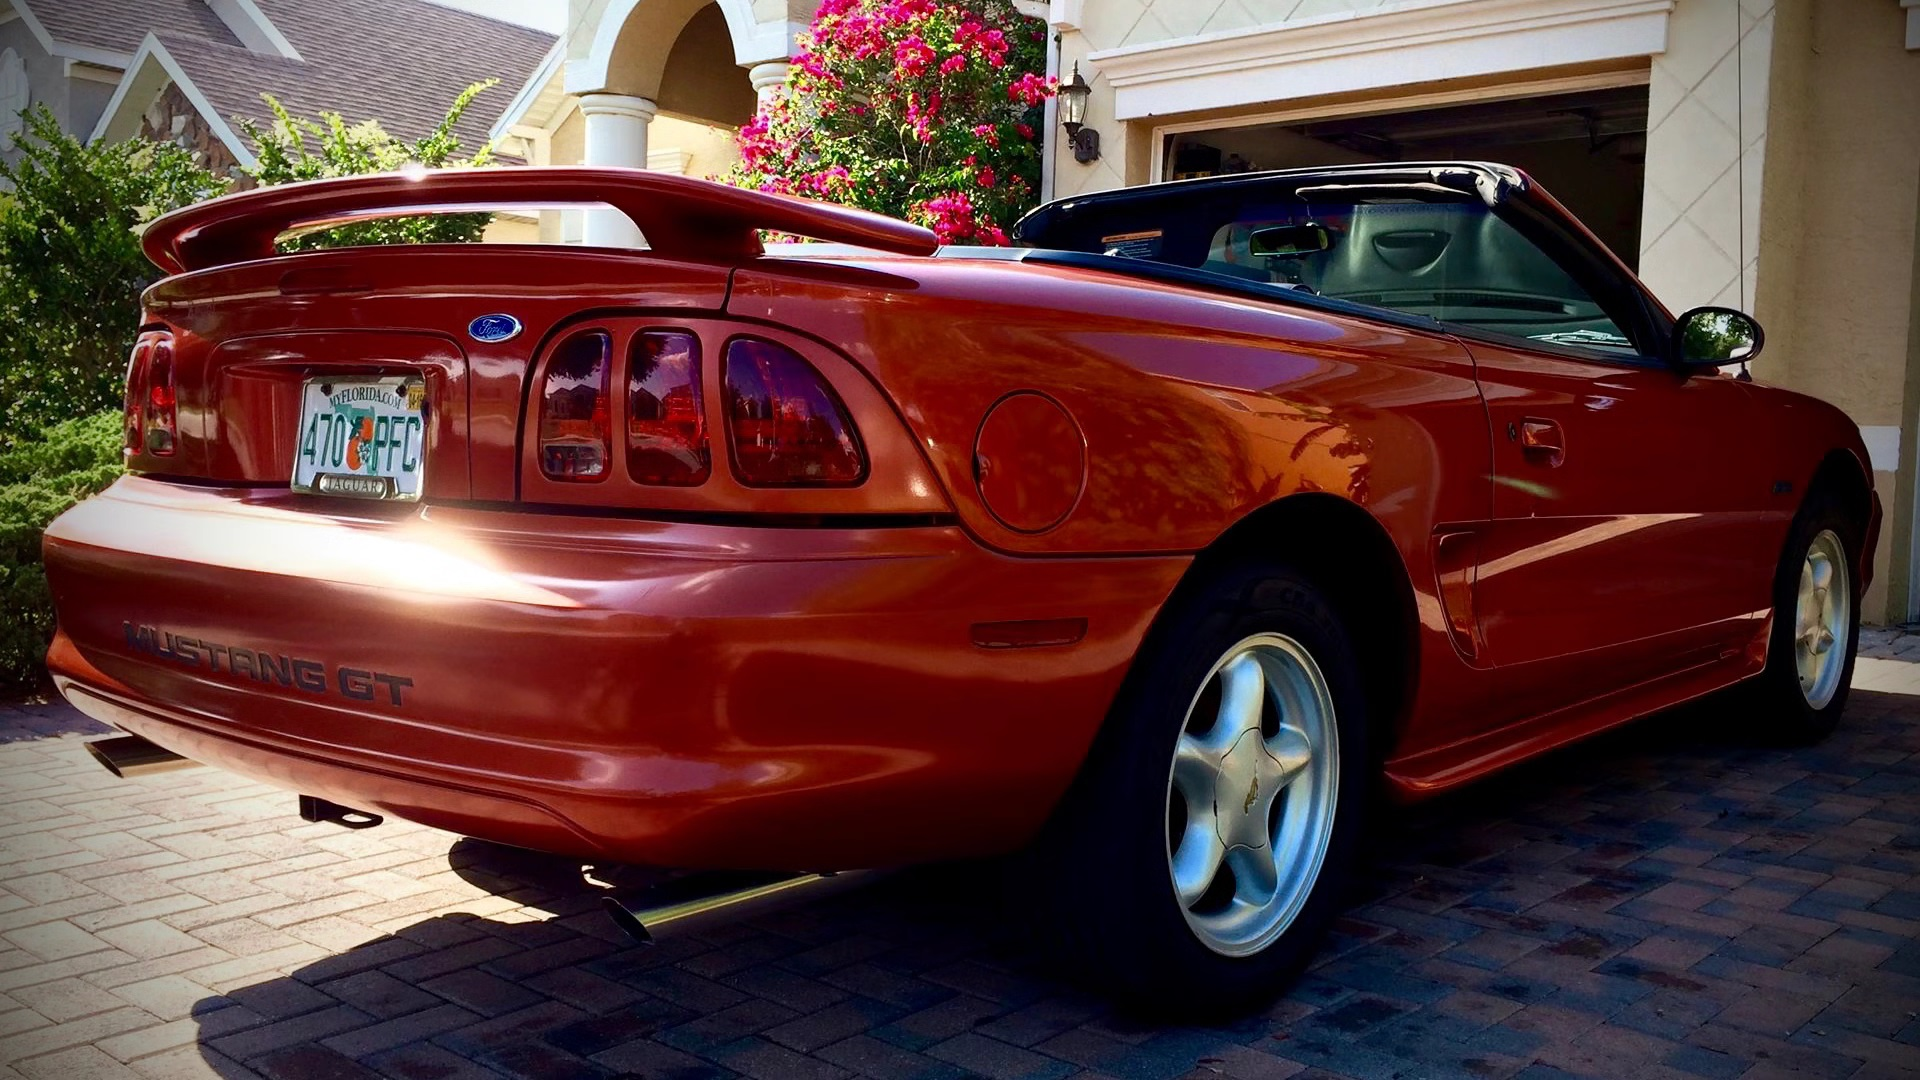 Video: Installing A Cold Air Intake On A 1997 Ford Mustang GT